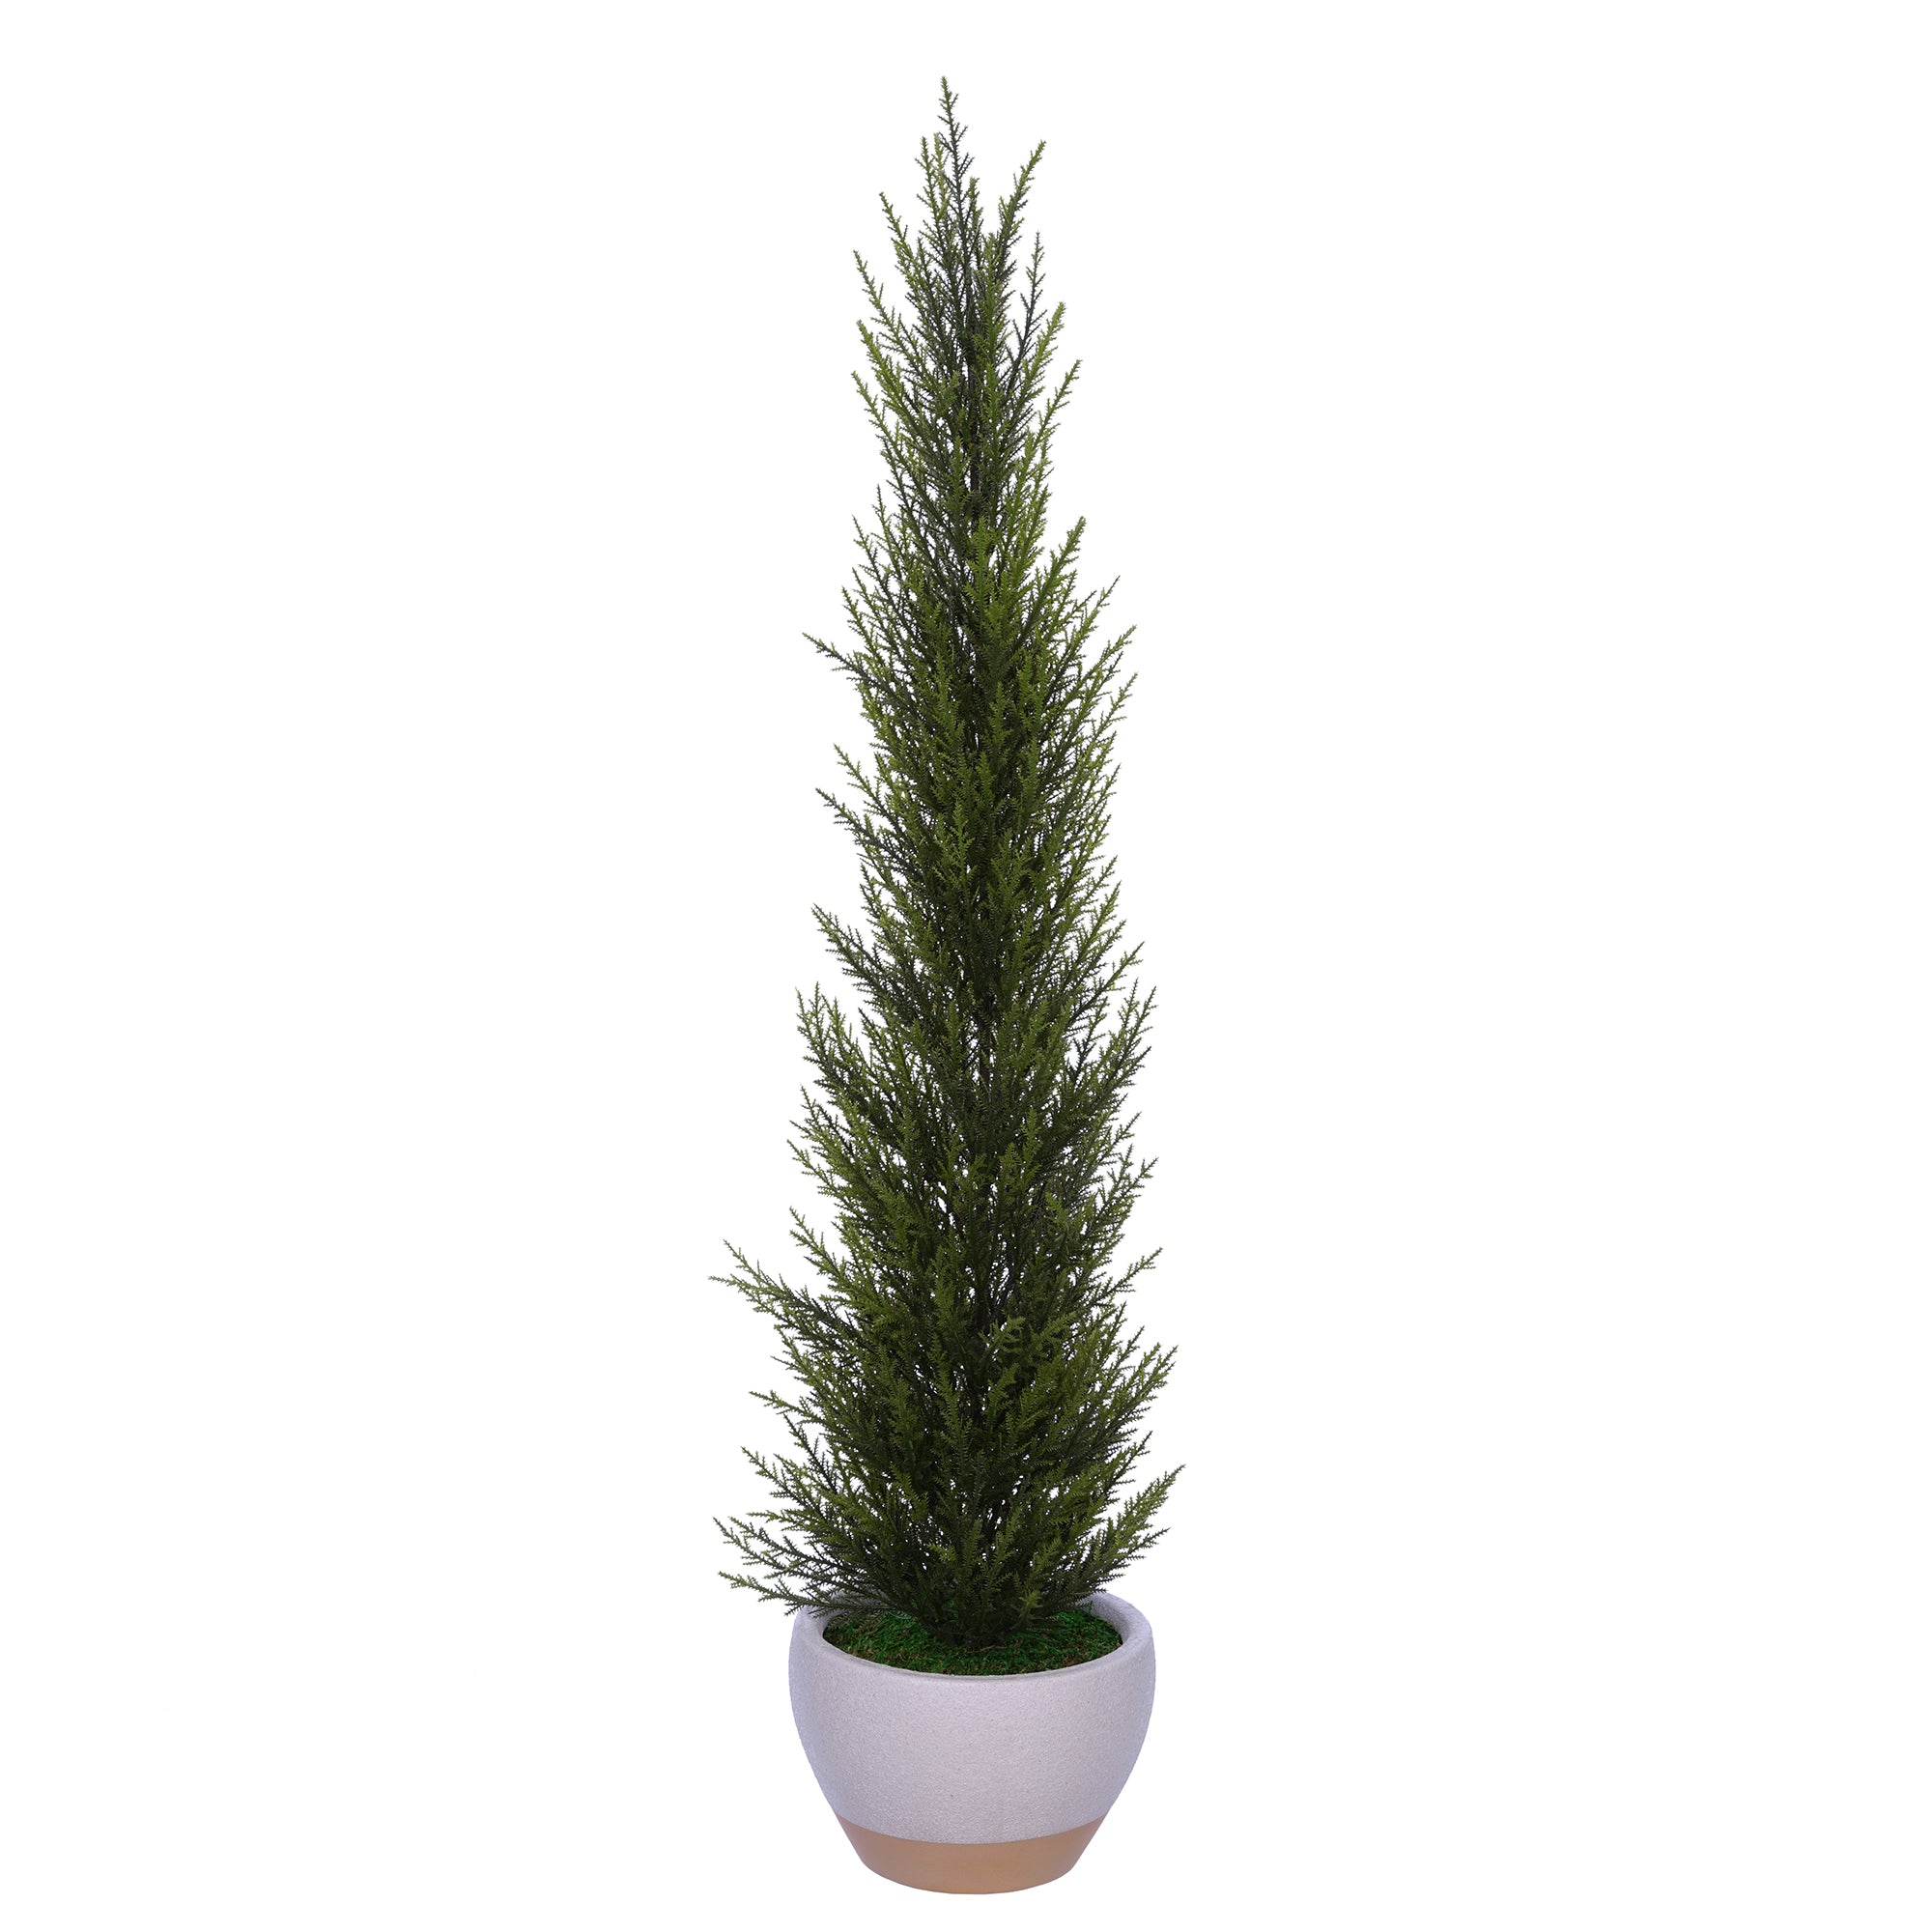 34-inch Cedar Pencil Topiary in Sandy White Ceramic Pot House of Silk Flowers®